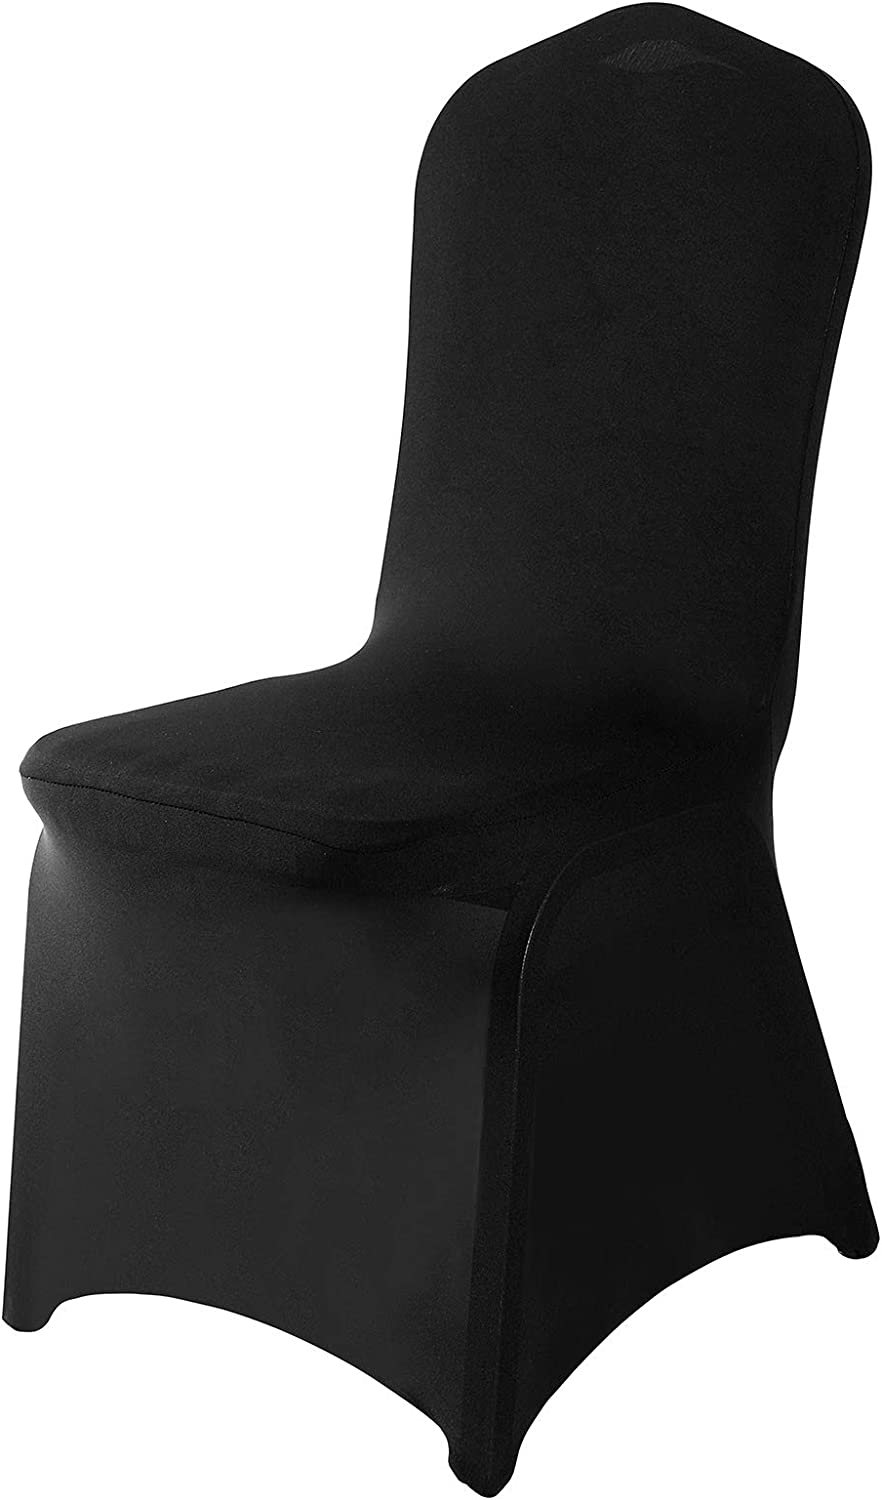 Ascoza 20 Pack Black Spandex Chair Chairs i Covers Back Phoenix Mall Save money for High